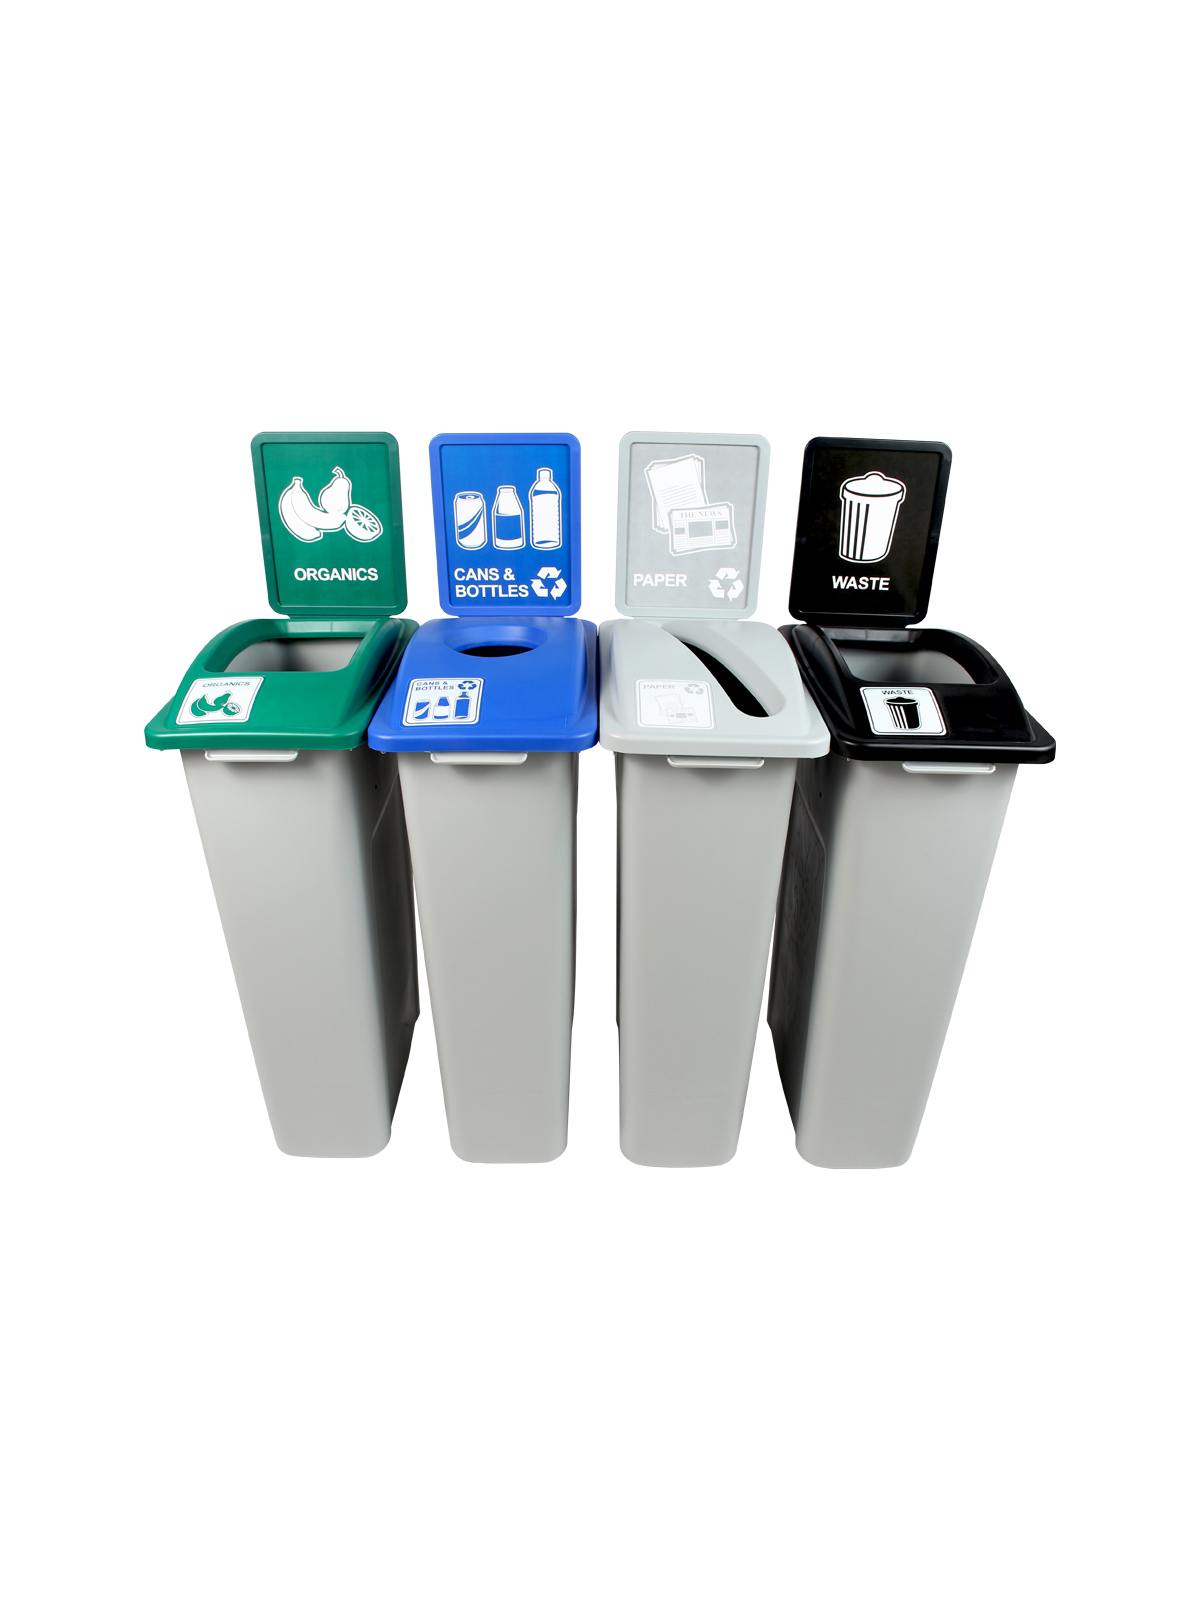 WASTE WATCHER - Quad - Cans & Bottles-Paper-Organics-Waste - Circle-Slot-Full - Grey-Blue-Grey-Green-Black